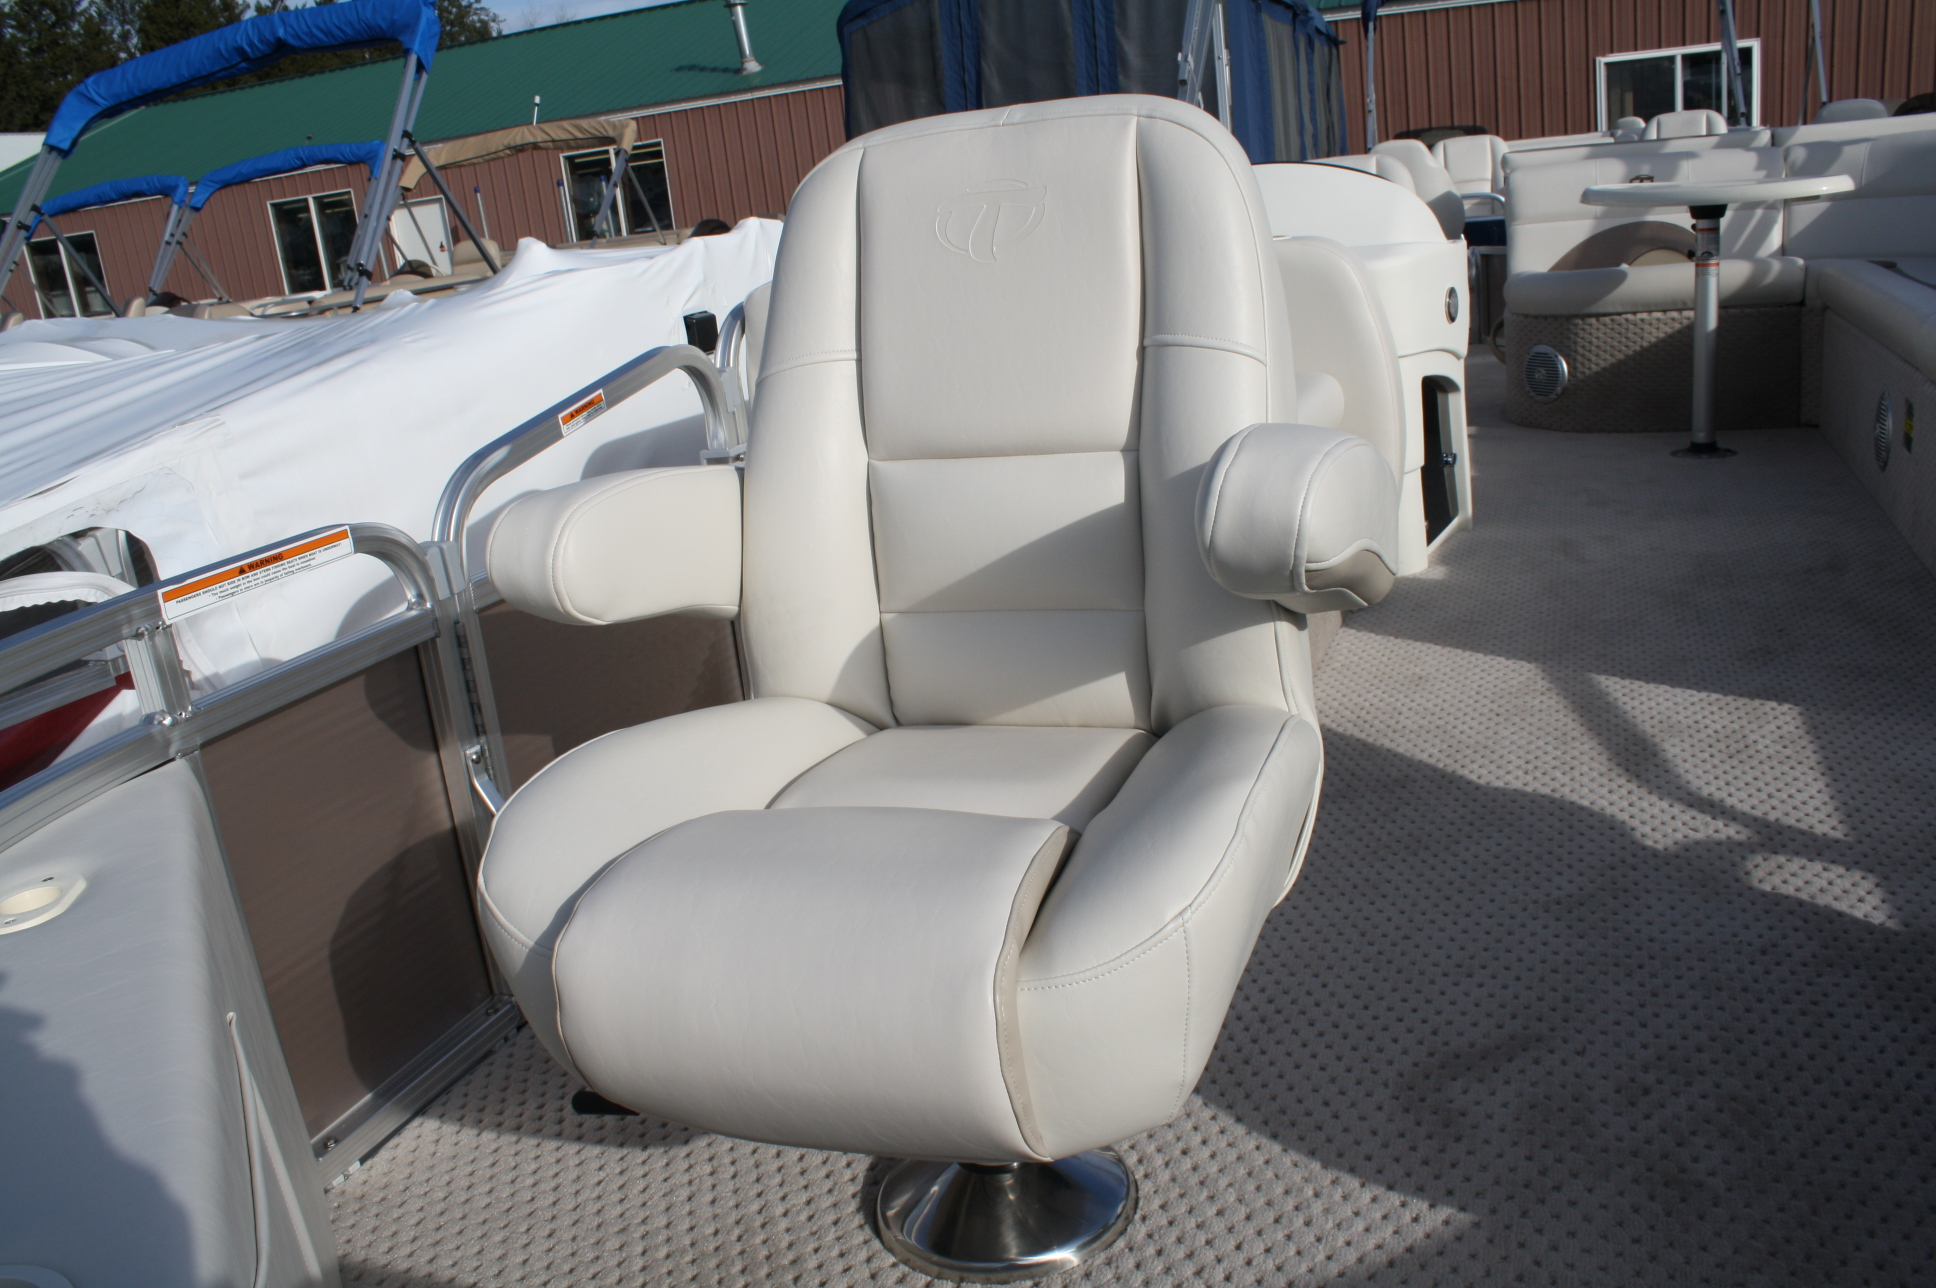 Boat Rental In Rio De Janeiro Pontoon Boat Seats For Sale In Canada Cheap Houseboat Plans For